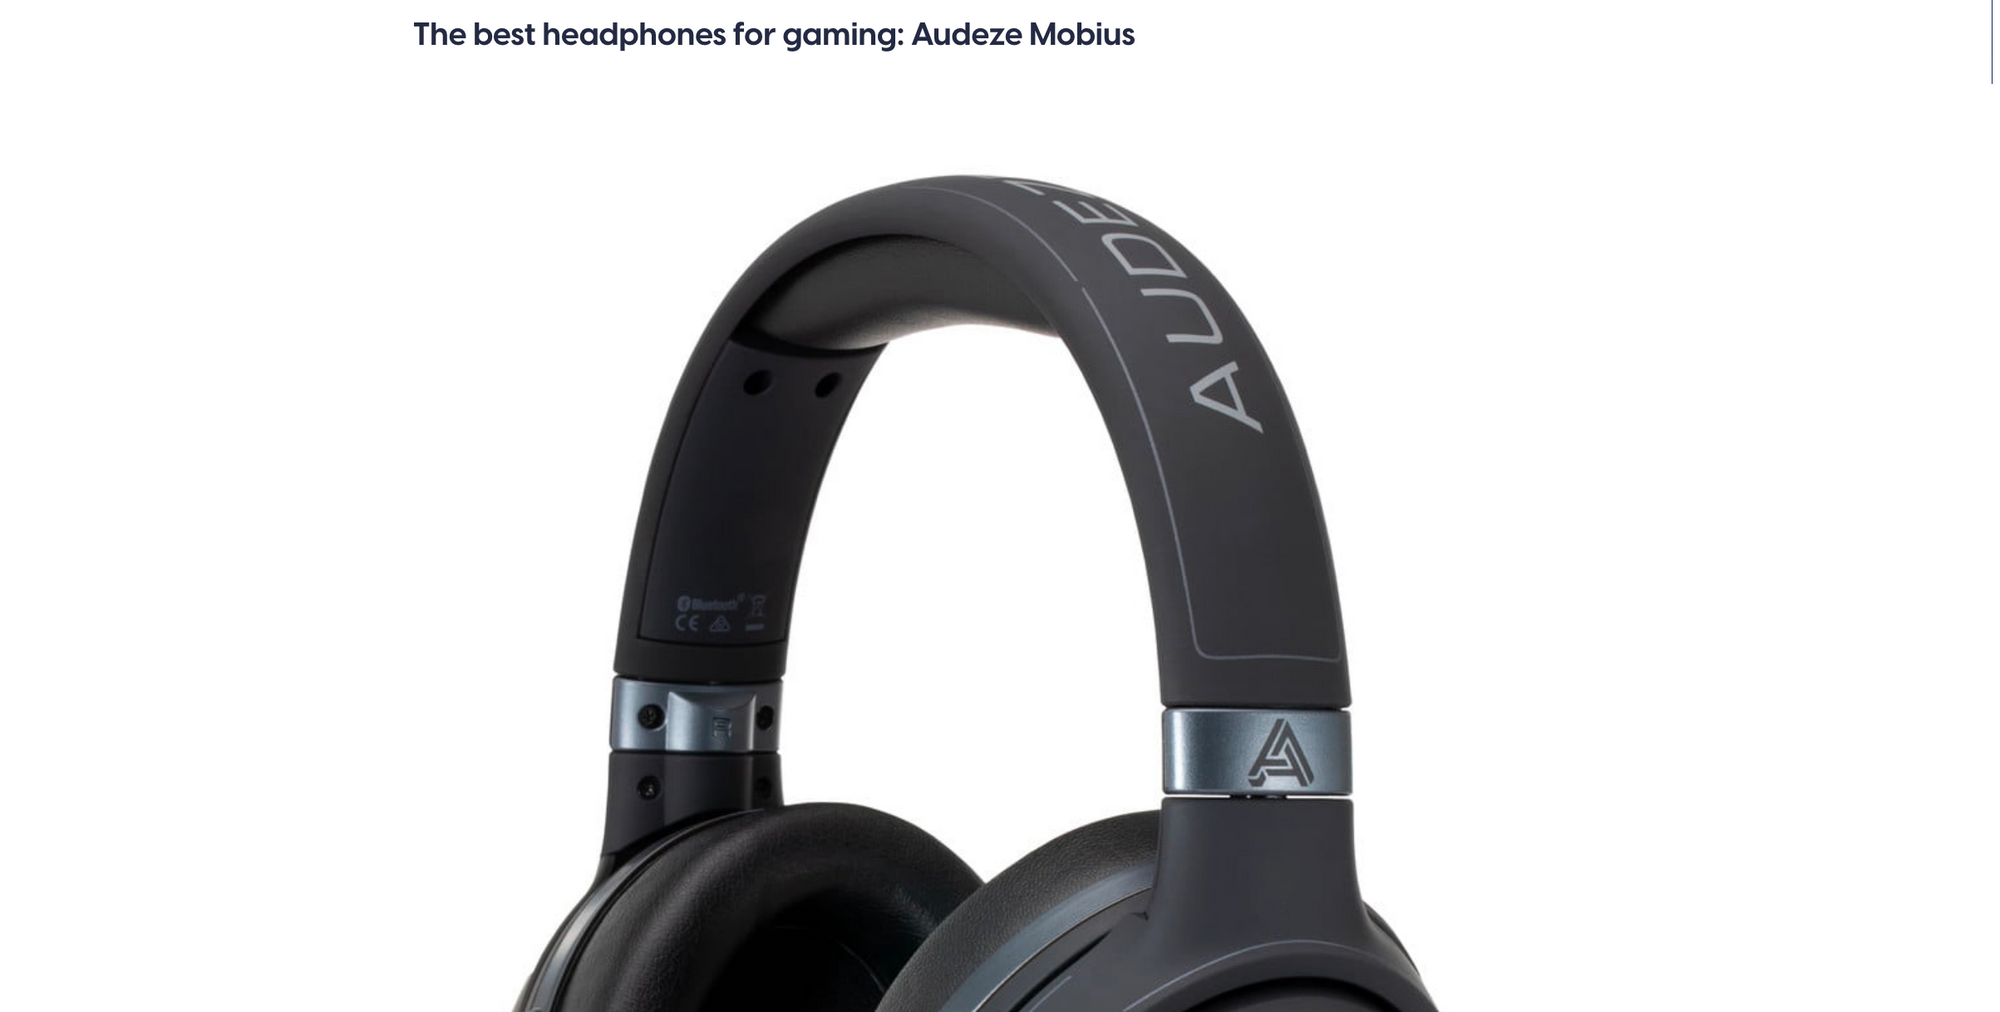 Digital Trends Names Audeze Mobius Top Gaming Headphone